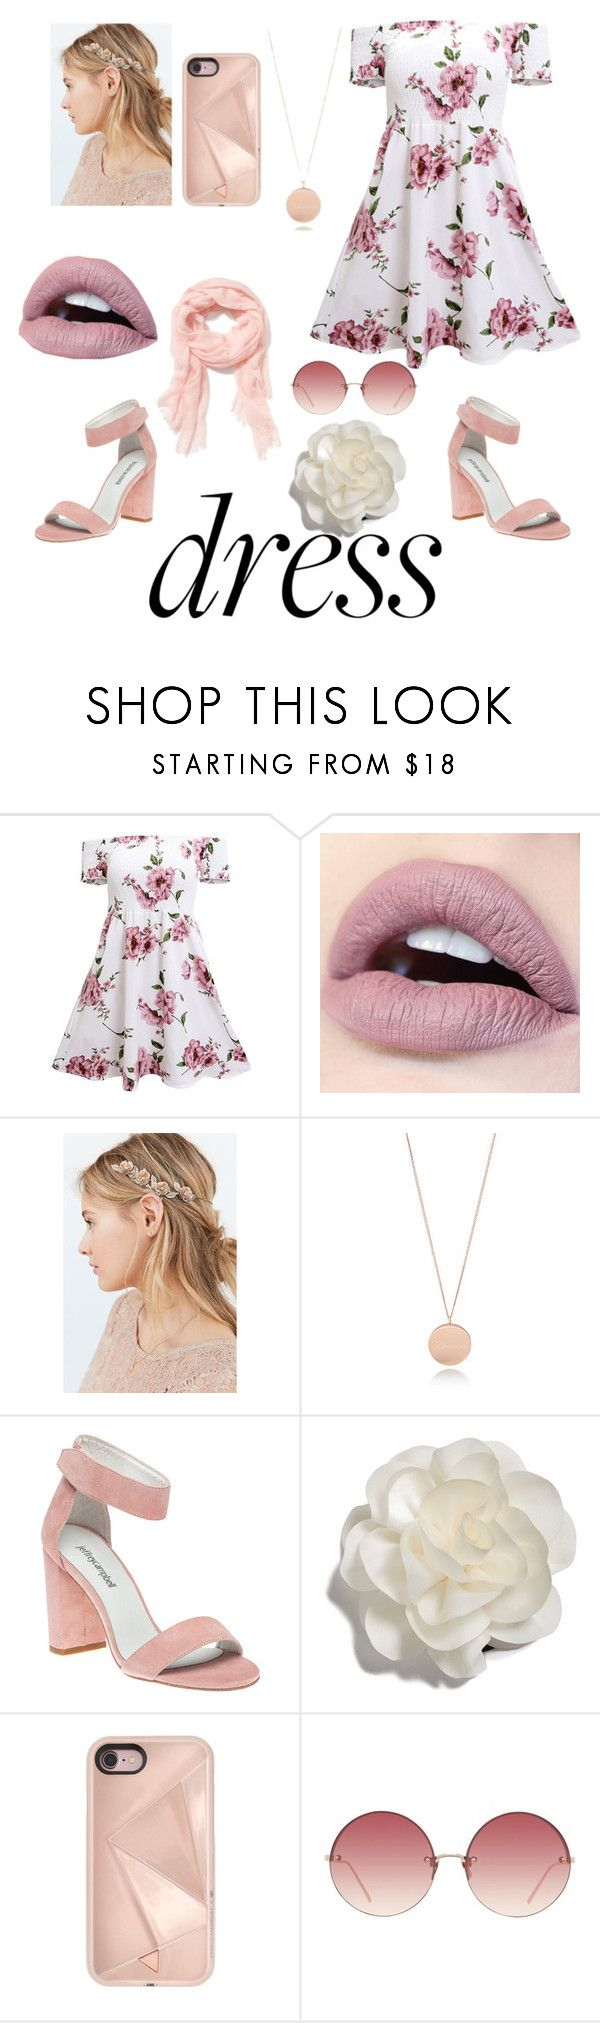 """""""Dreamy Flowy"""" by musicaltheater ❤ liked on Polyvore featuring Urban Outfitters, Luzdemia, Jeffrey Campbell, Cara, Rebecca Minkoff, Linda Farrow and Old Navy"""